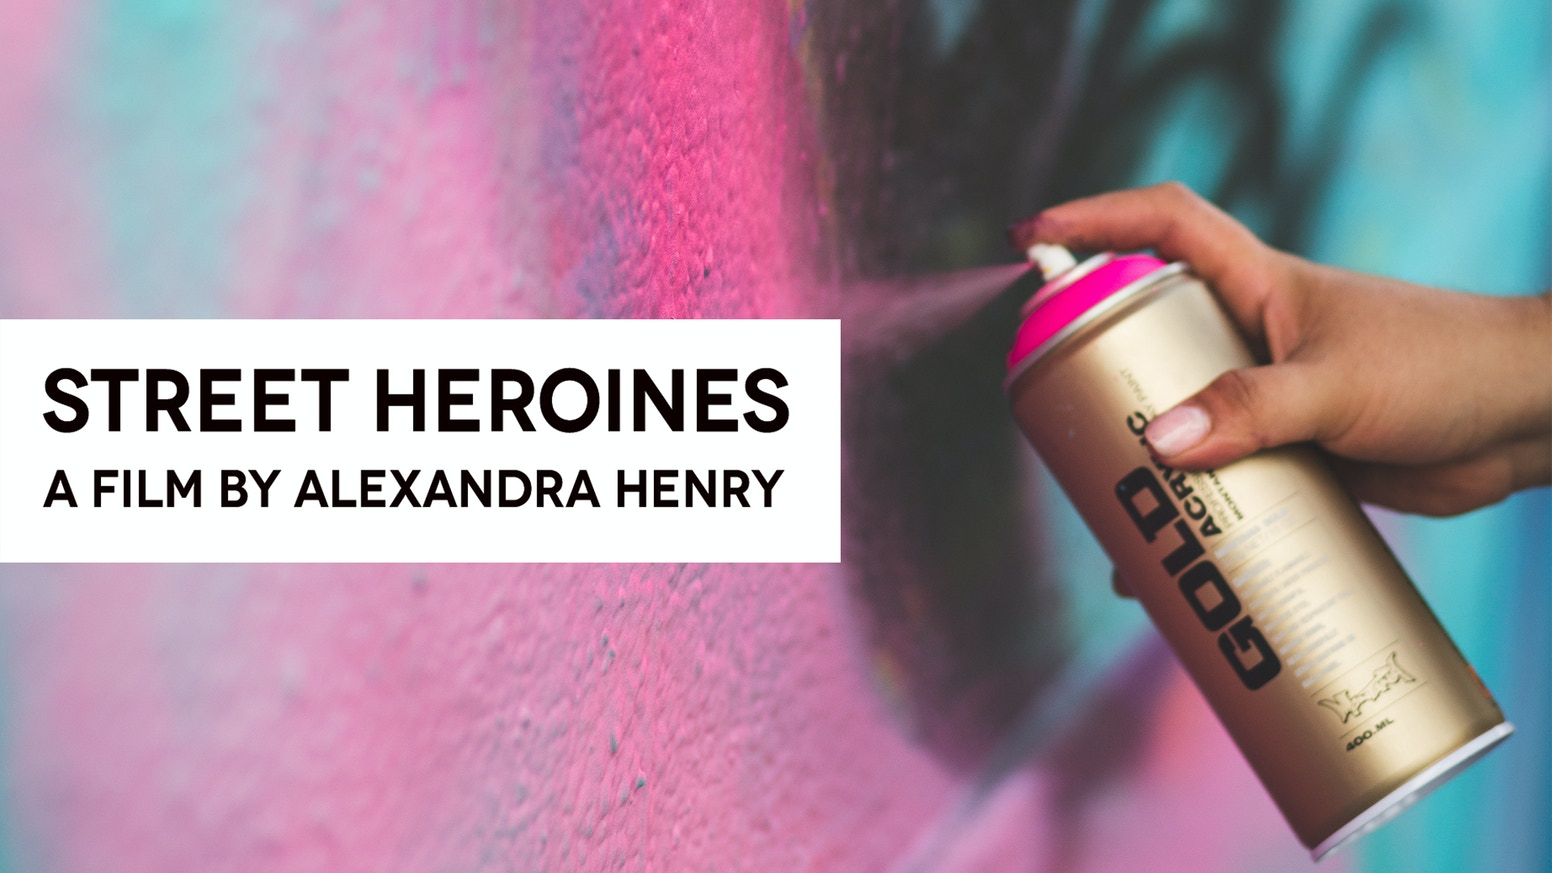 Street Heroines is a documentary film on the courage and creativity of female graffiti & street artists from around the world.